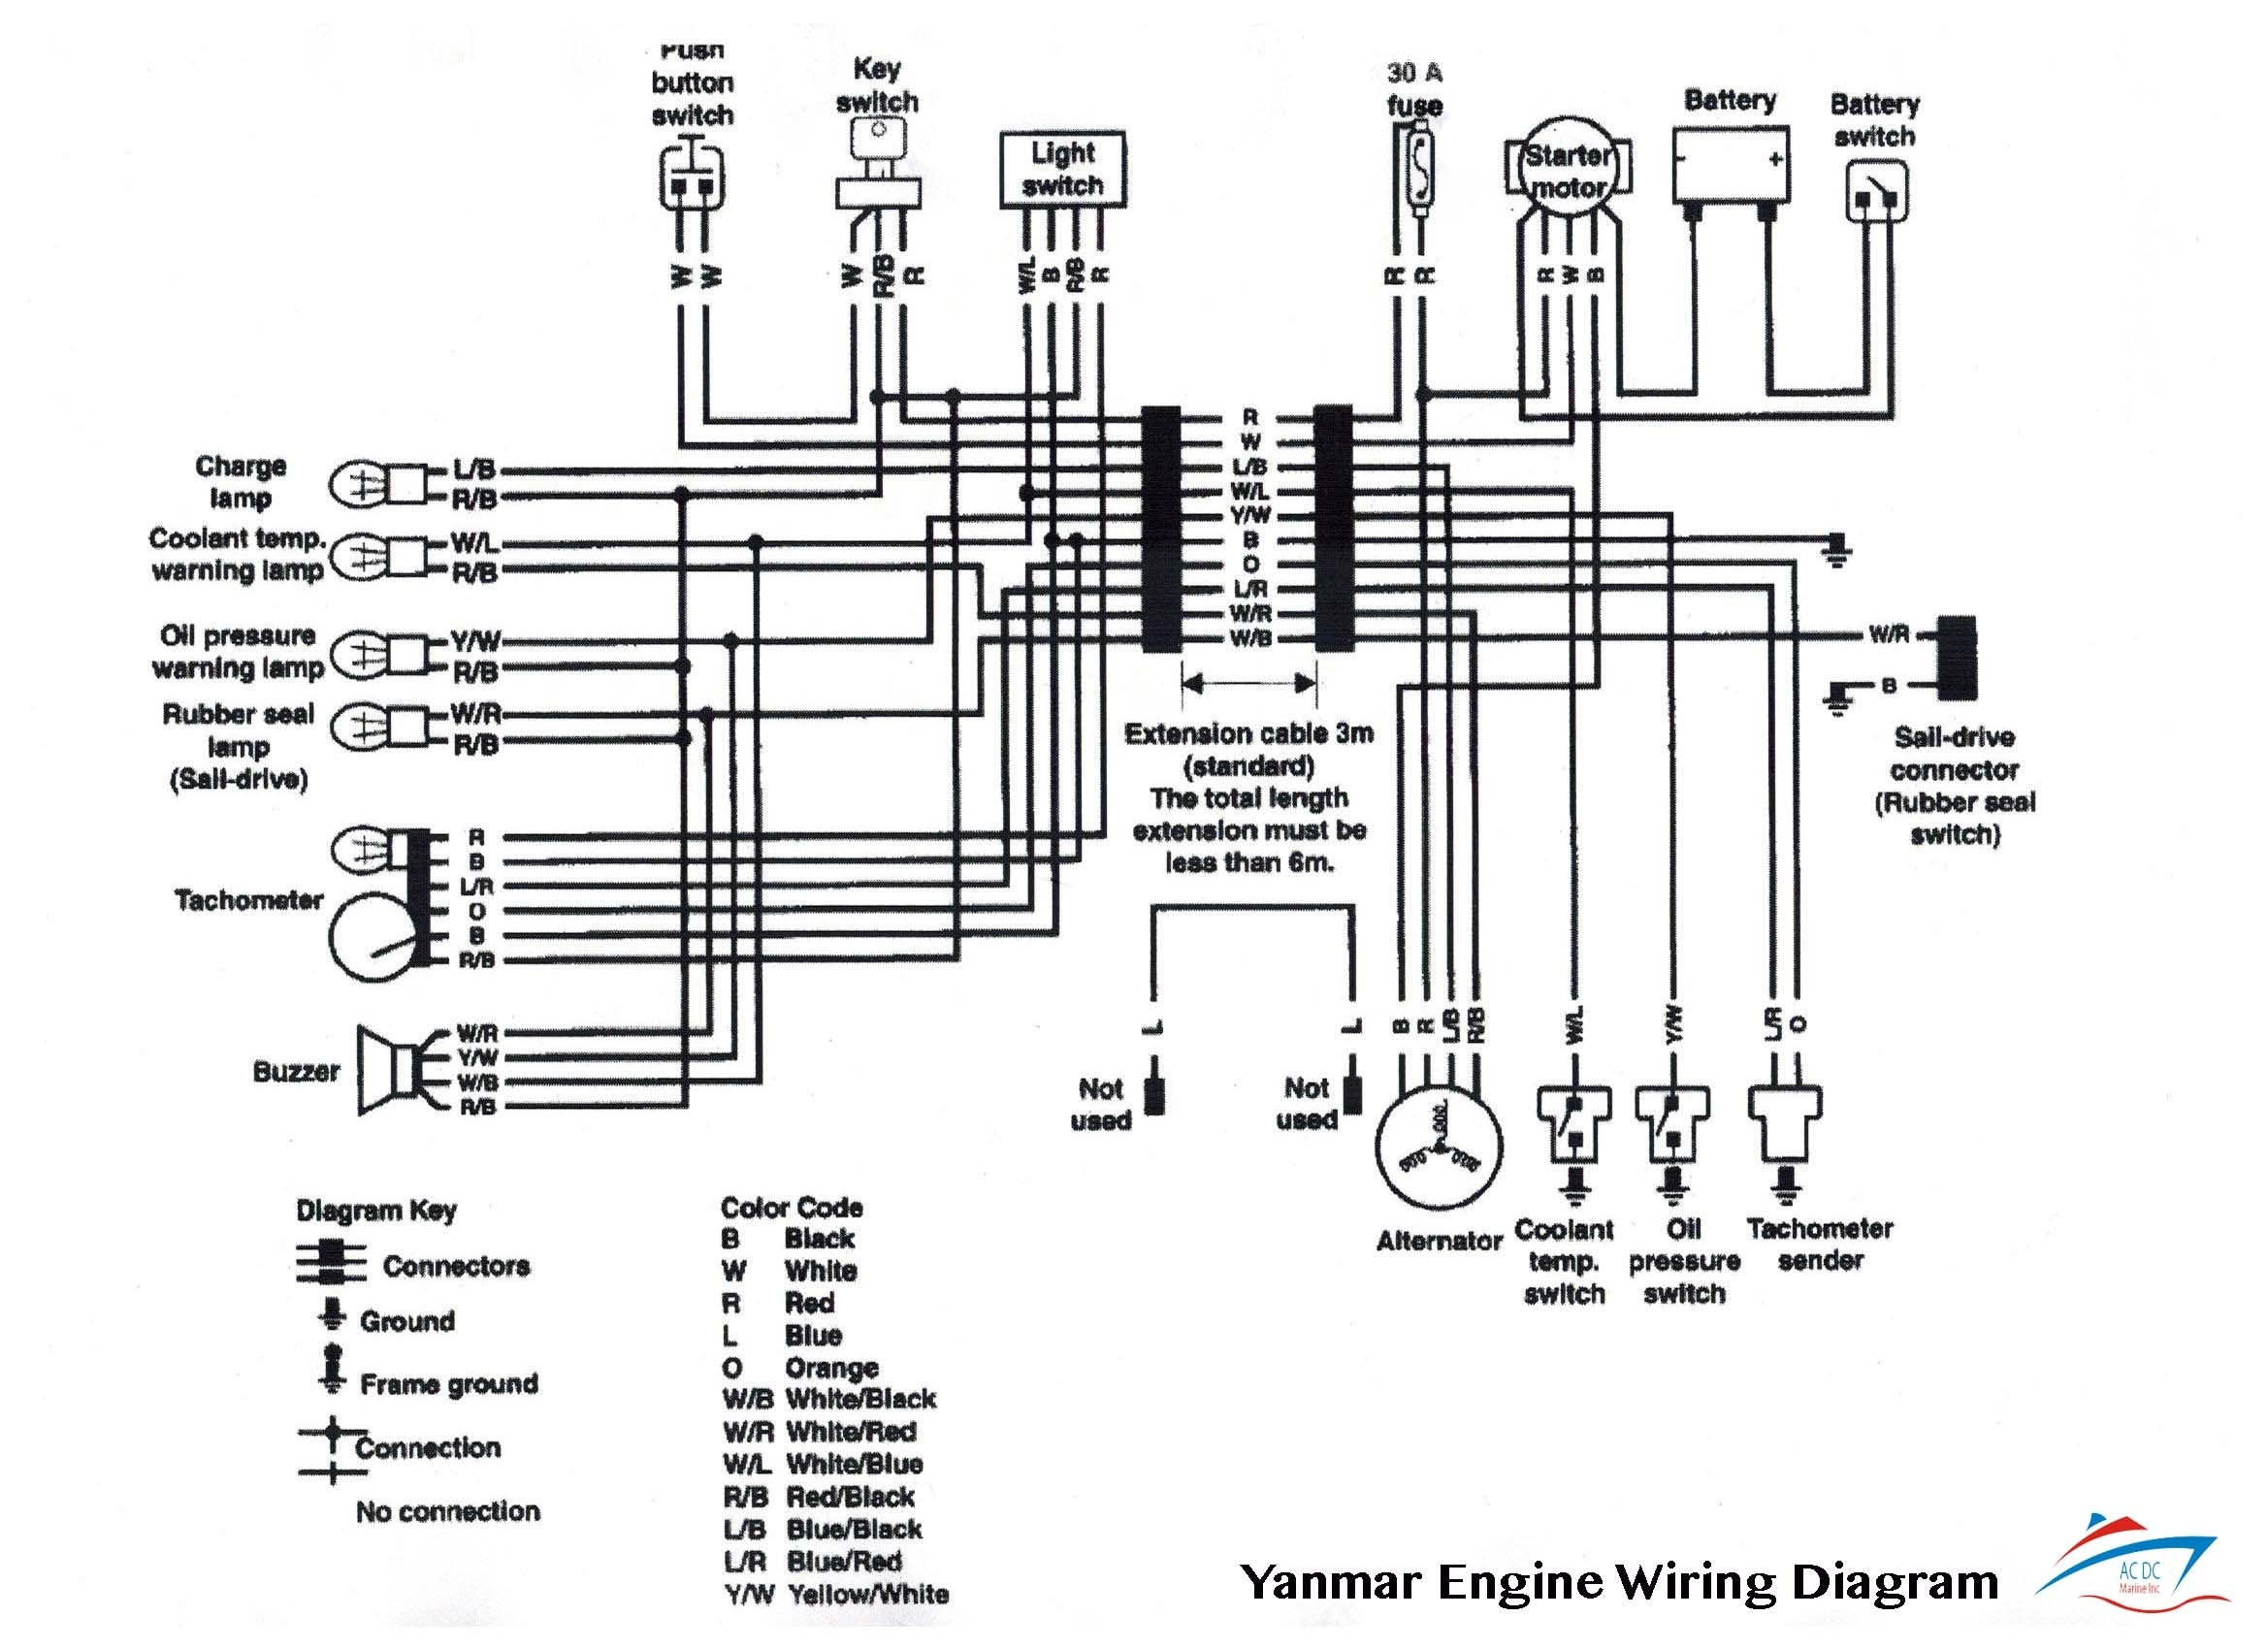 tohatsu tachometer wiring diagram. Black Bedroom Furniture Sets. Home Design Ideas